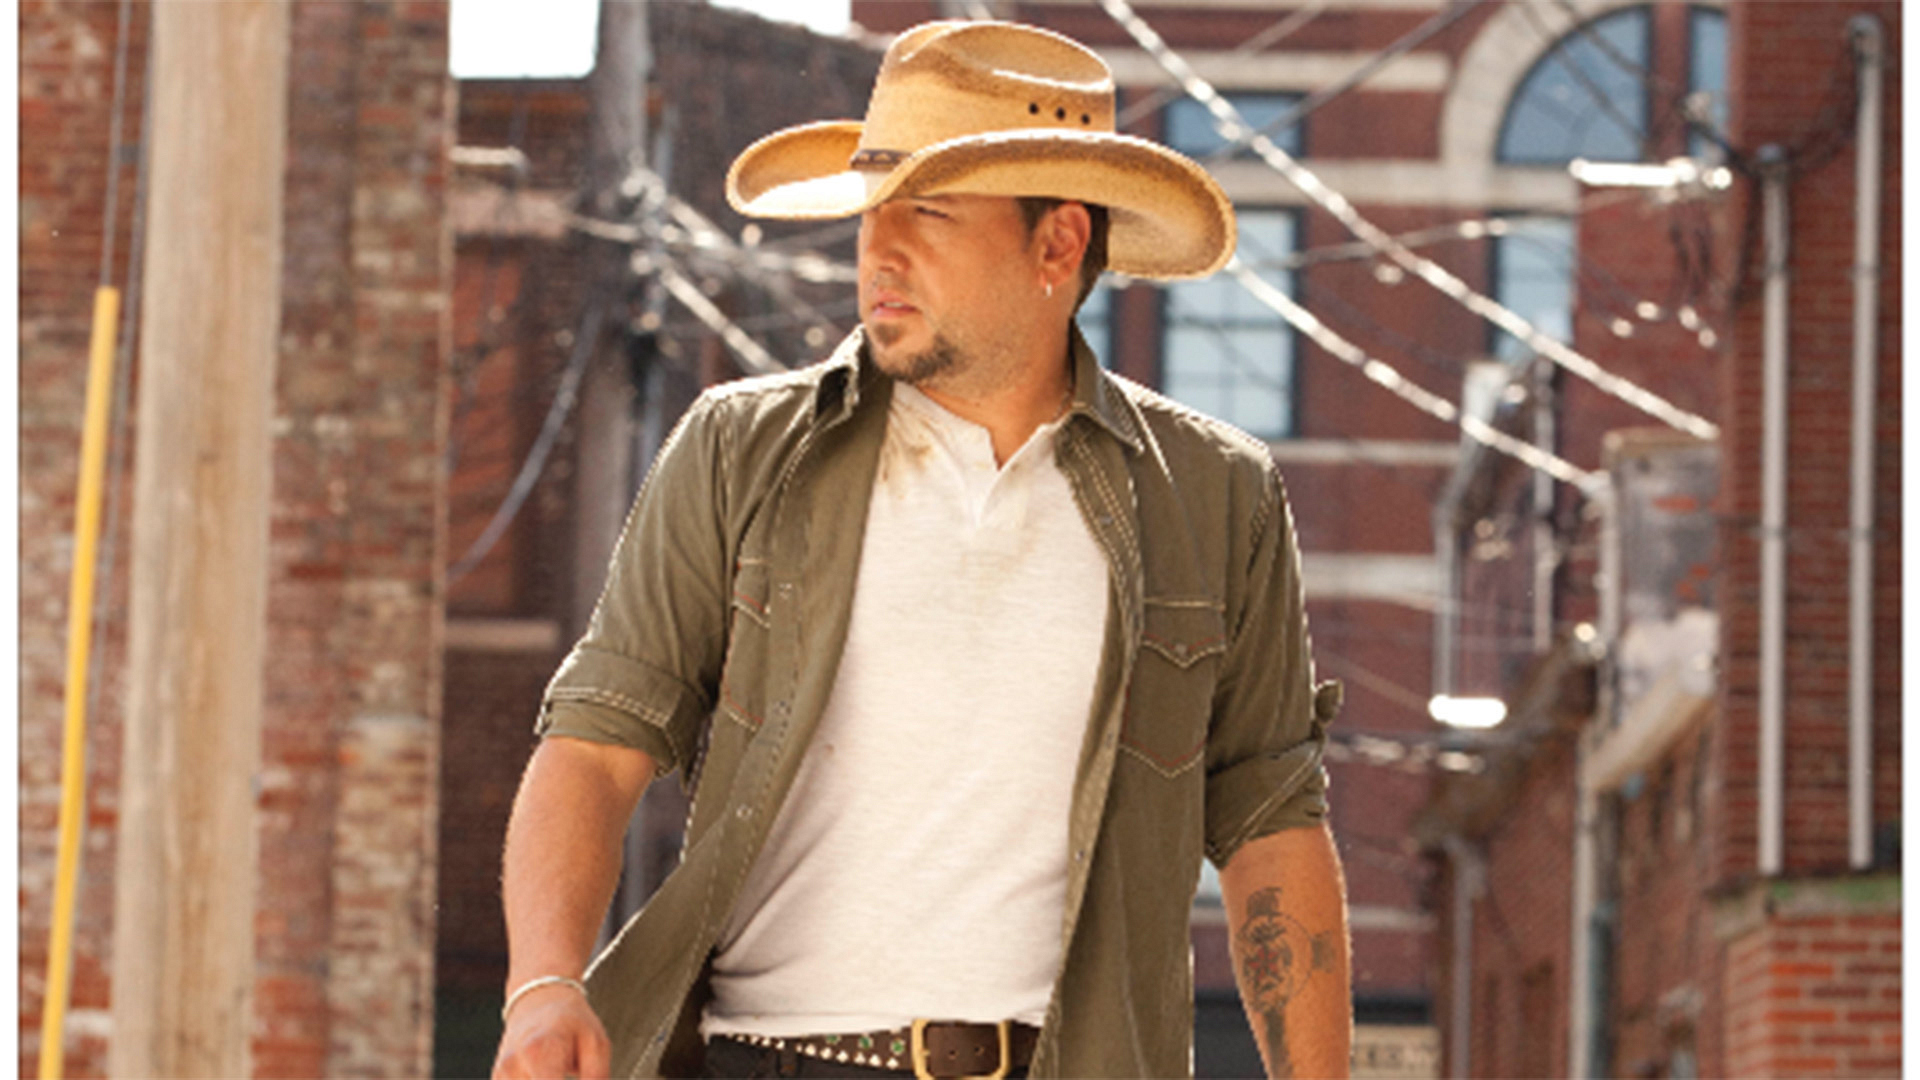 Jason Aldean is definitely our kind of country superstar!